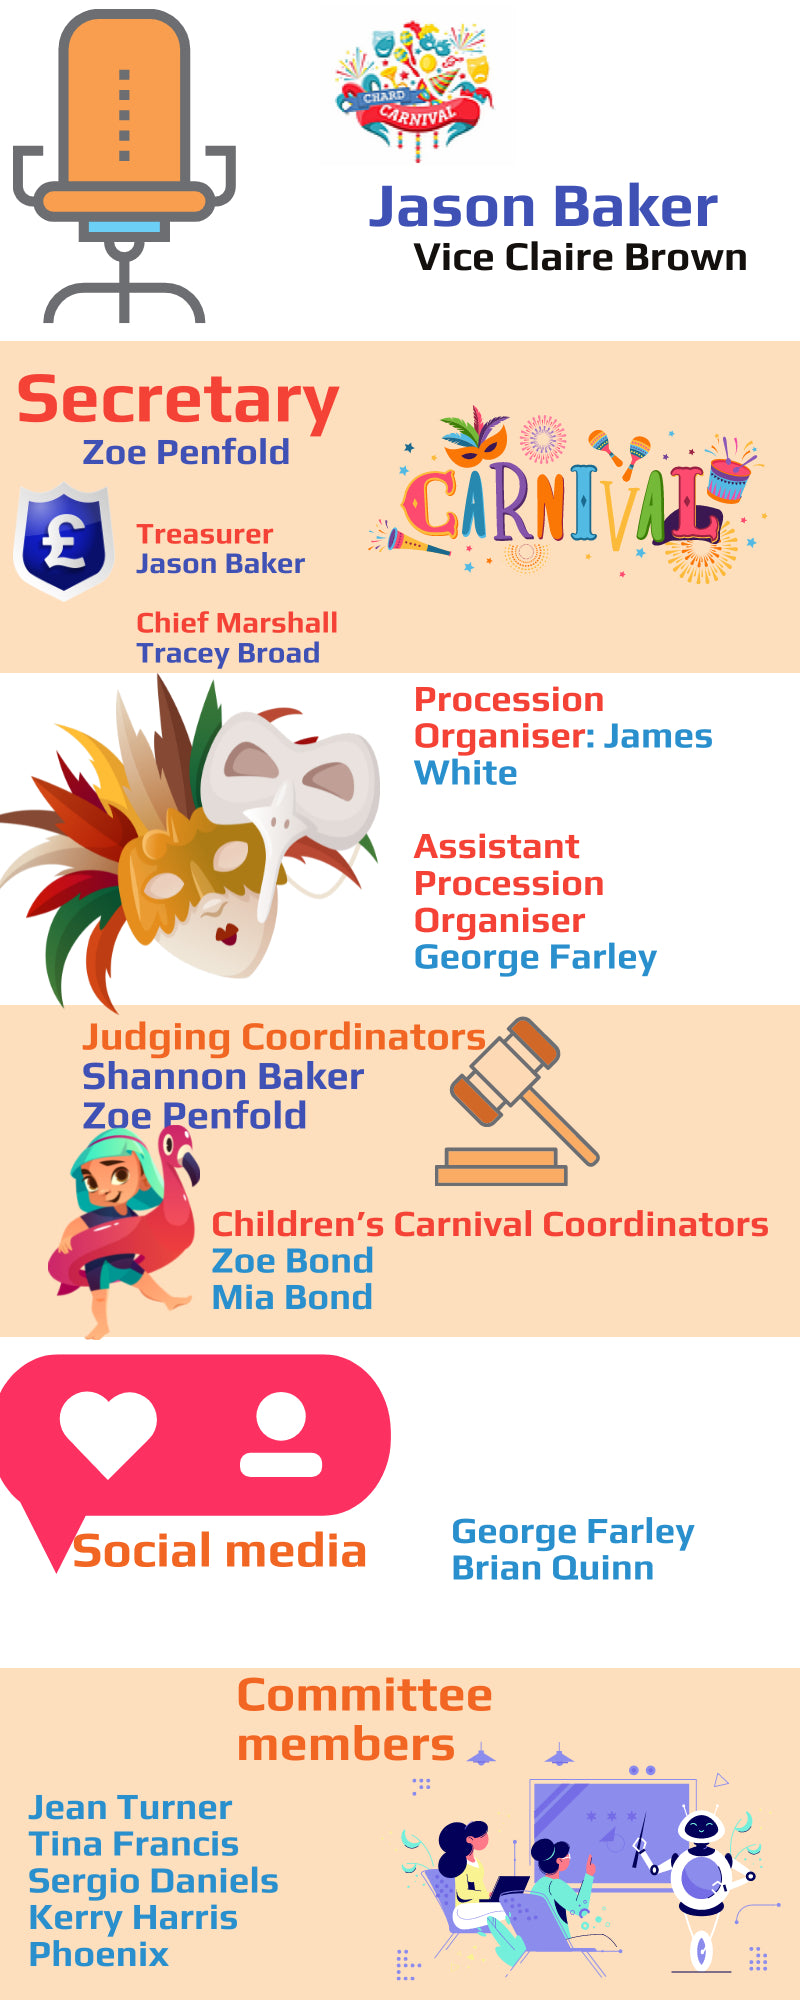 Chard Carnival committee